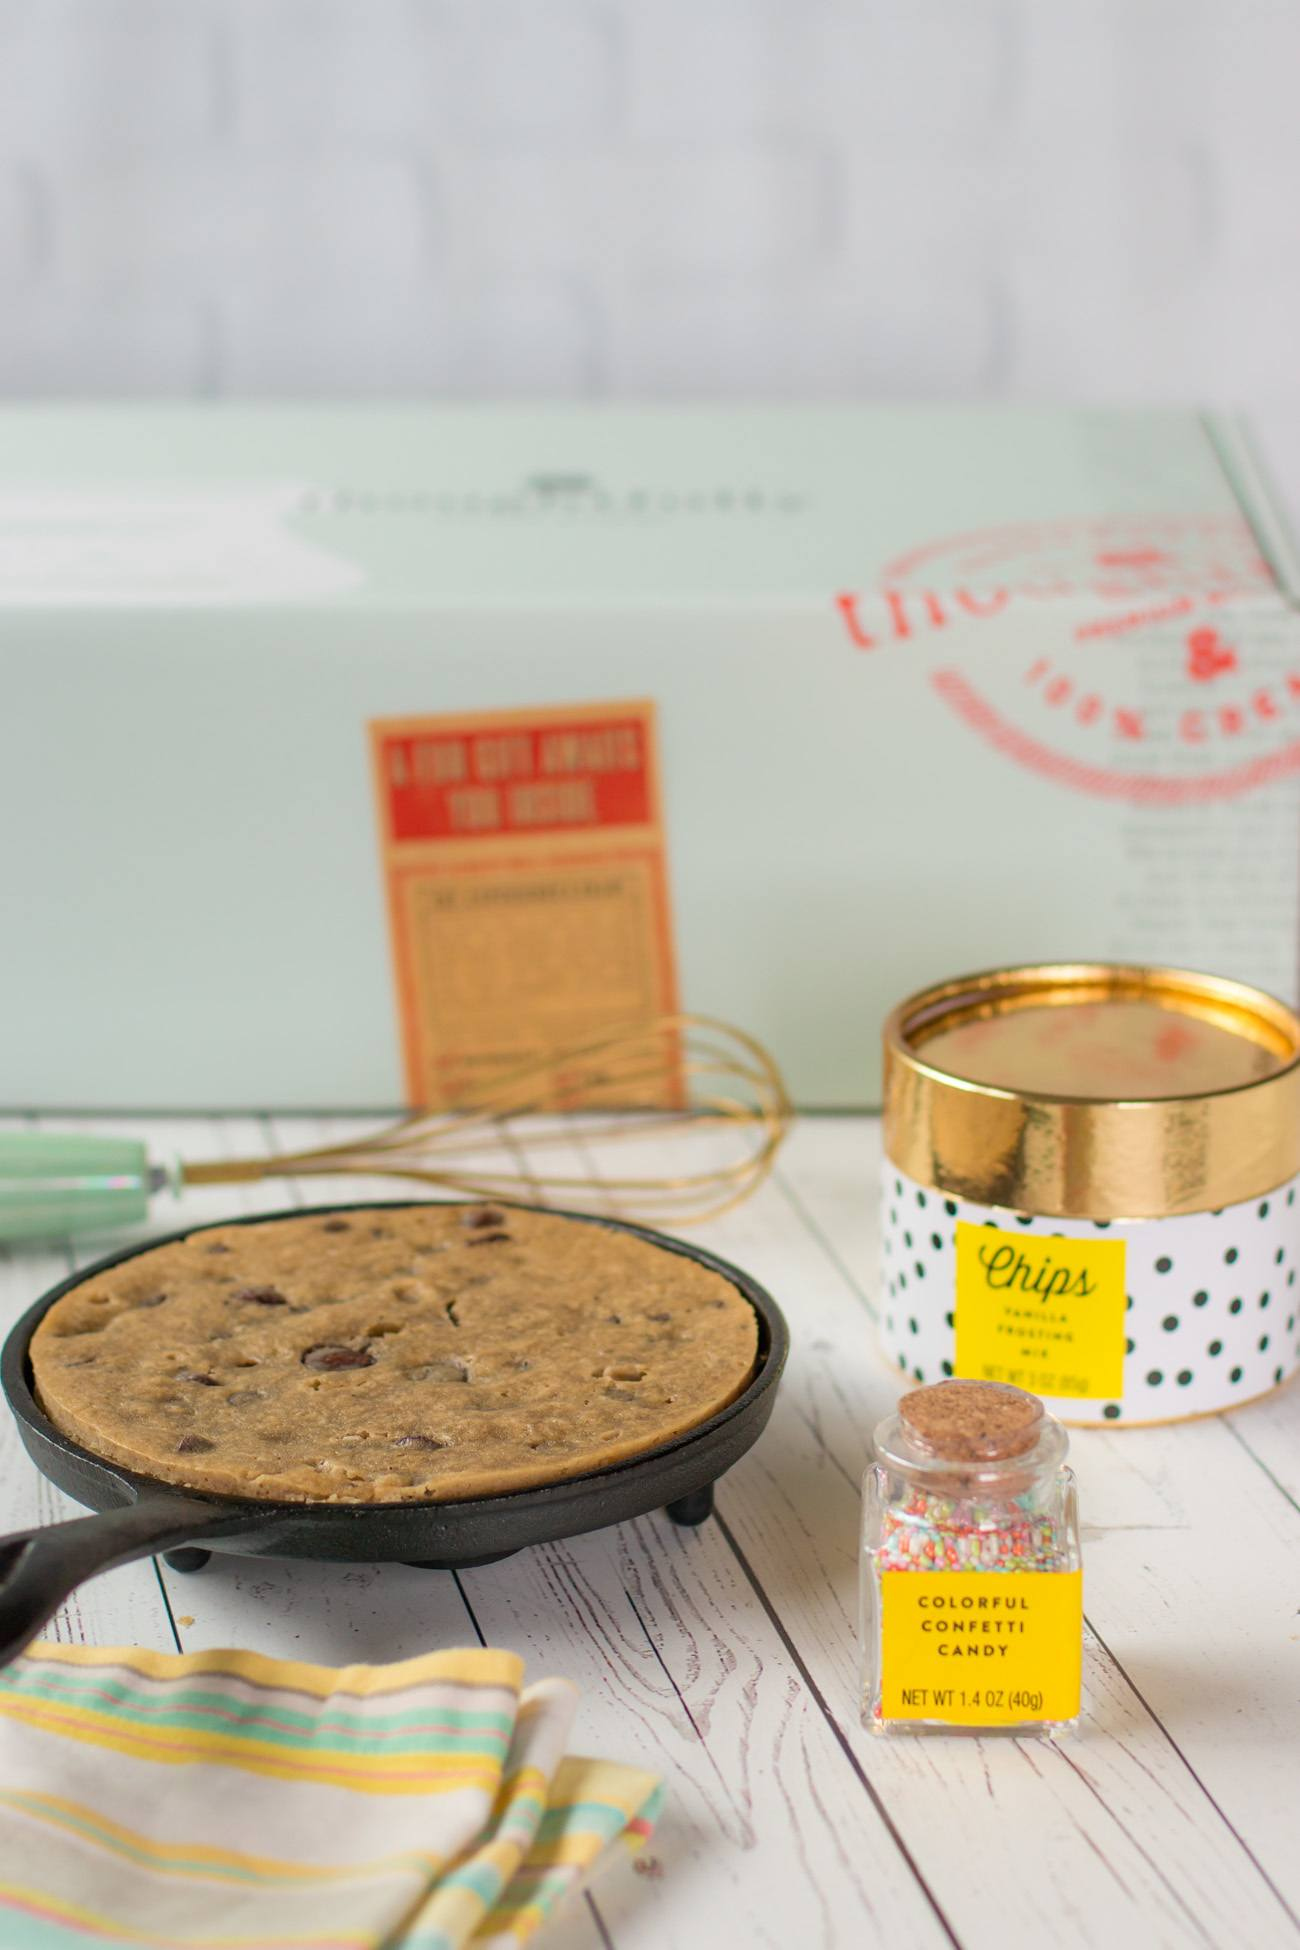 A single serve chocolate chip cookie made in a cast iron skillet that is part of a Thoughtfully gift set.